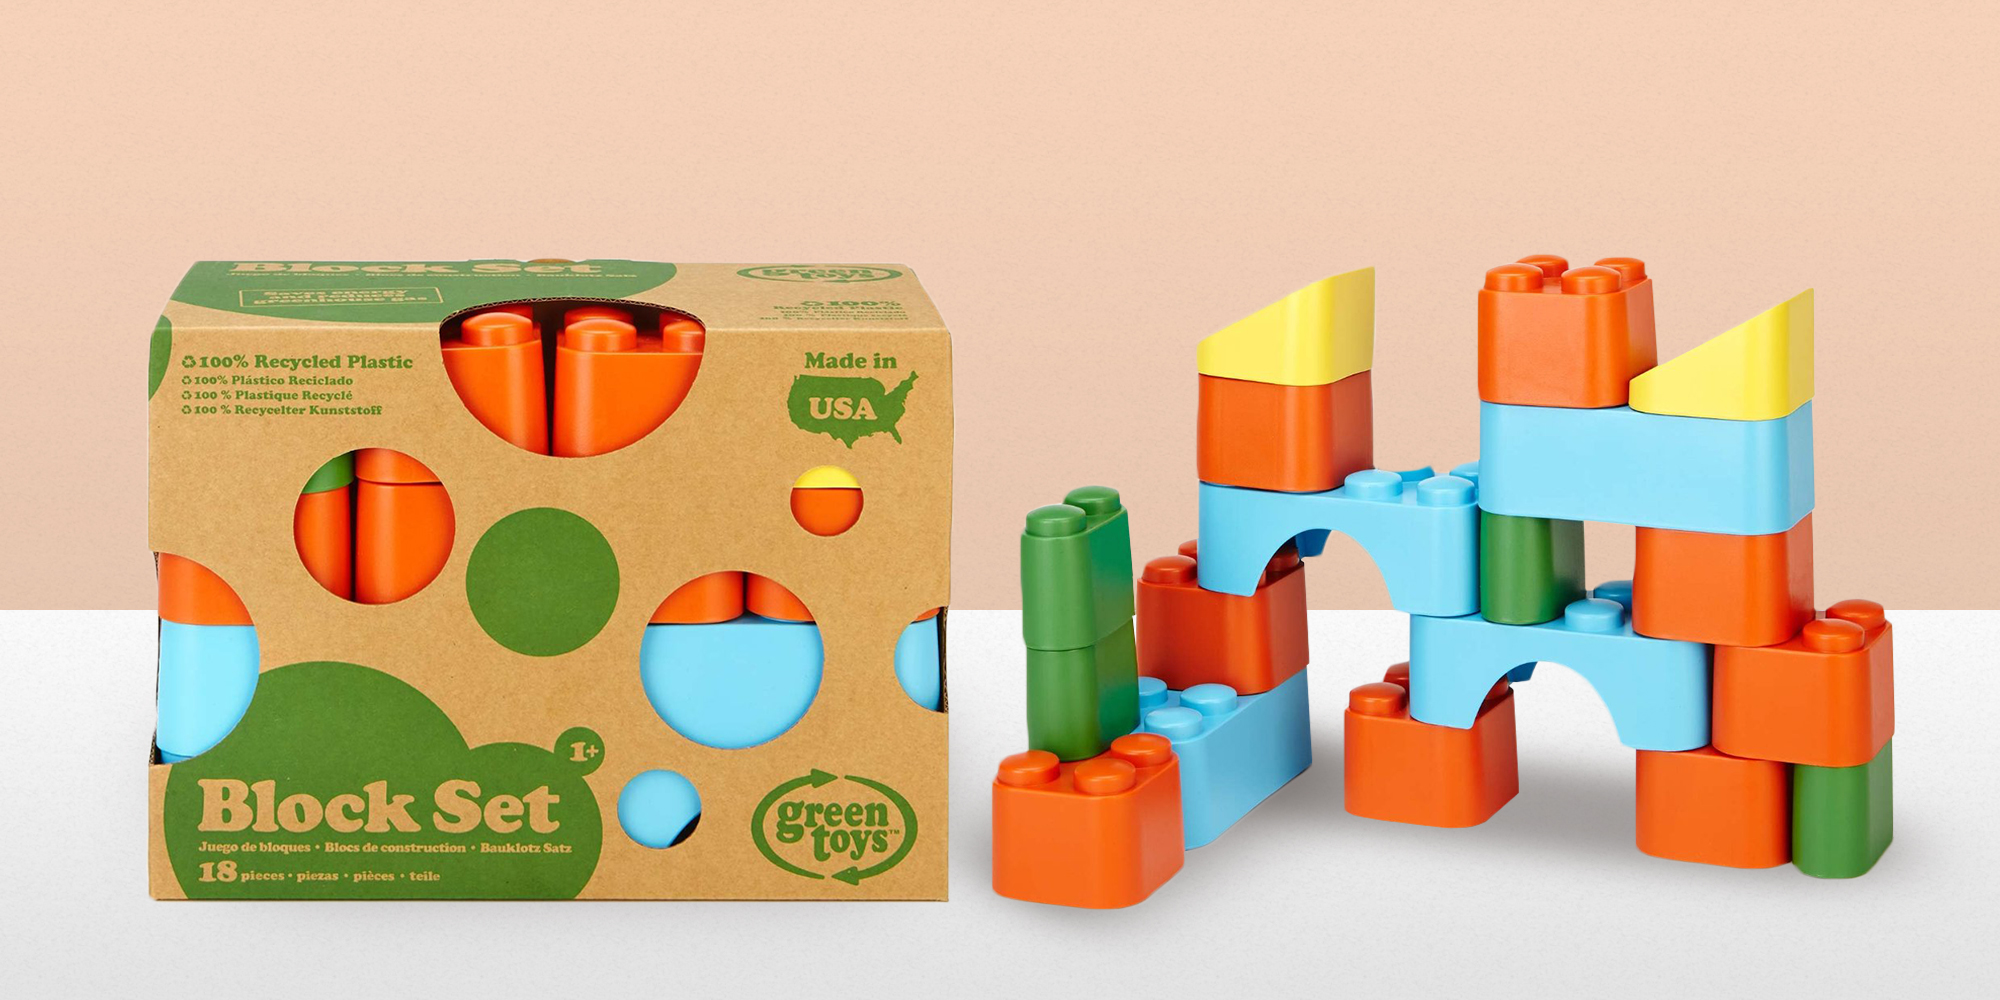 Best Toy Building Blocks For Toddlers And Kids : Best toy blocks sets in plastic and wooden